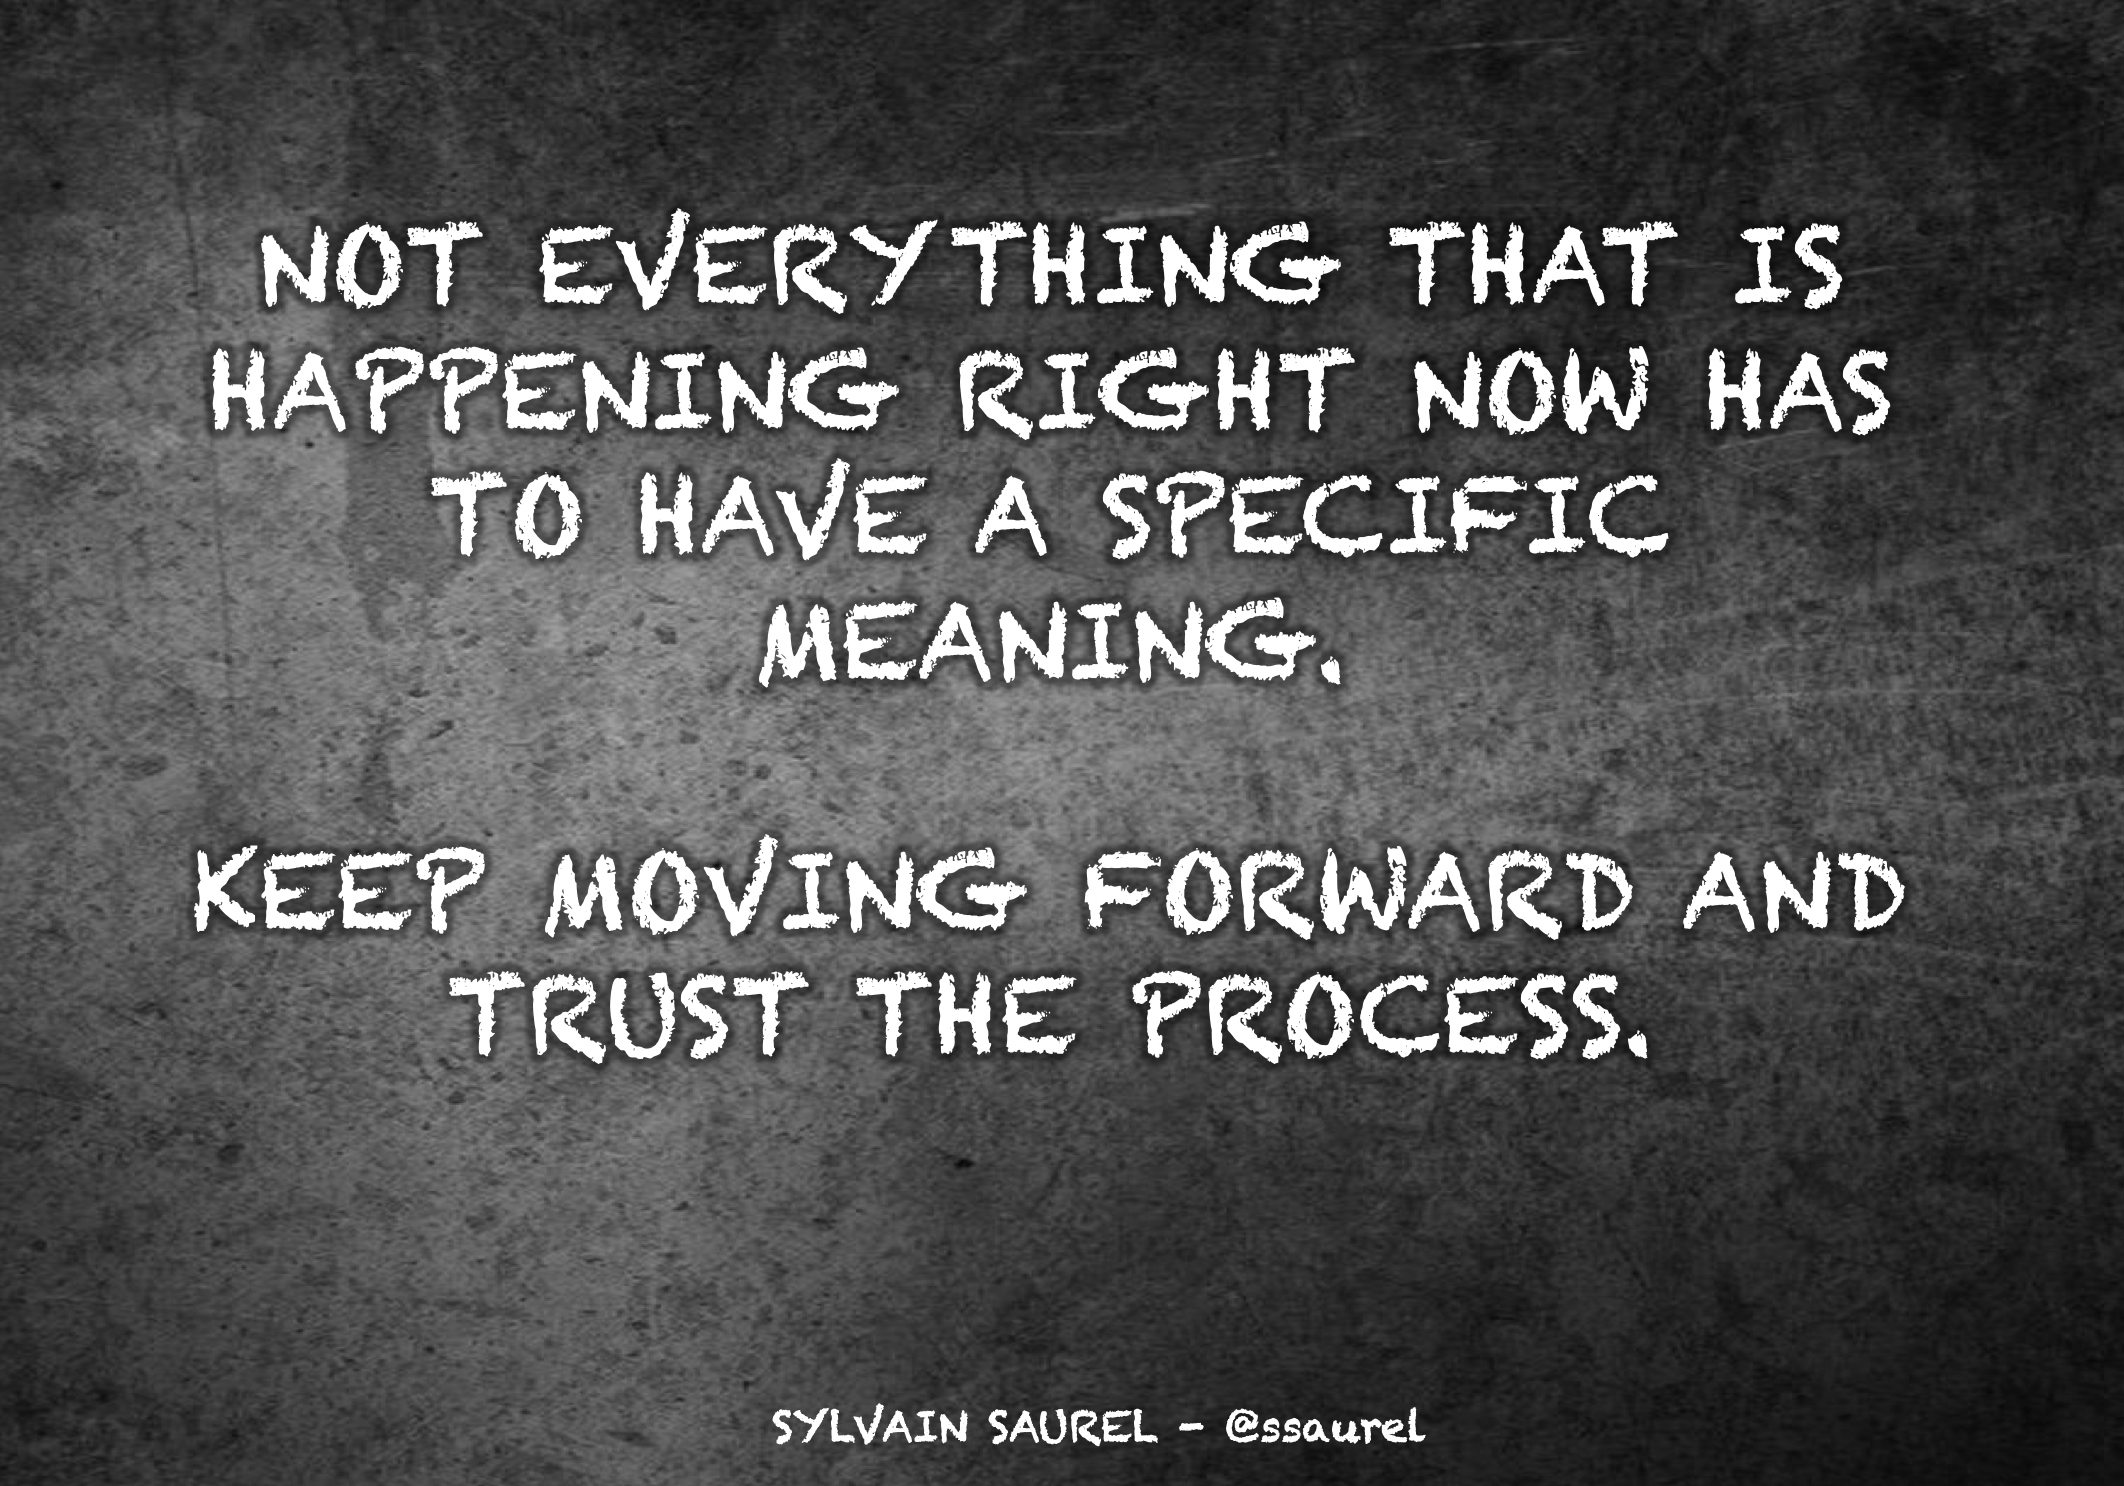 [Image] Not everything that is happening right now has to have a specific meaning. Keep moving forward and trust the process.